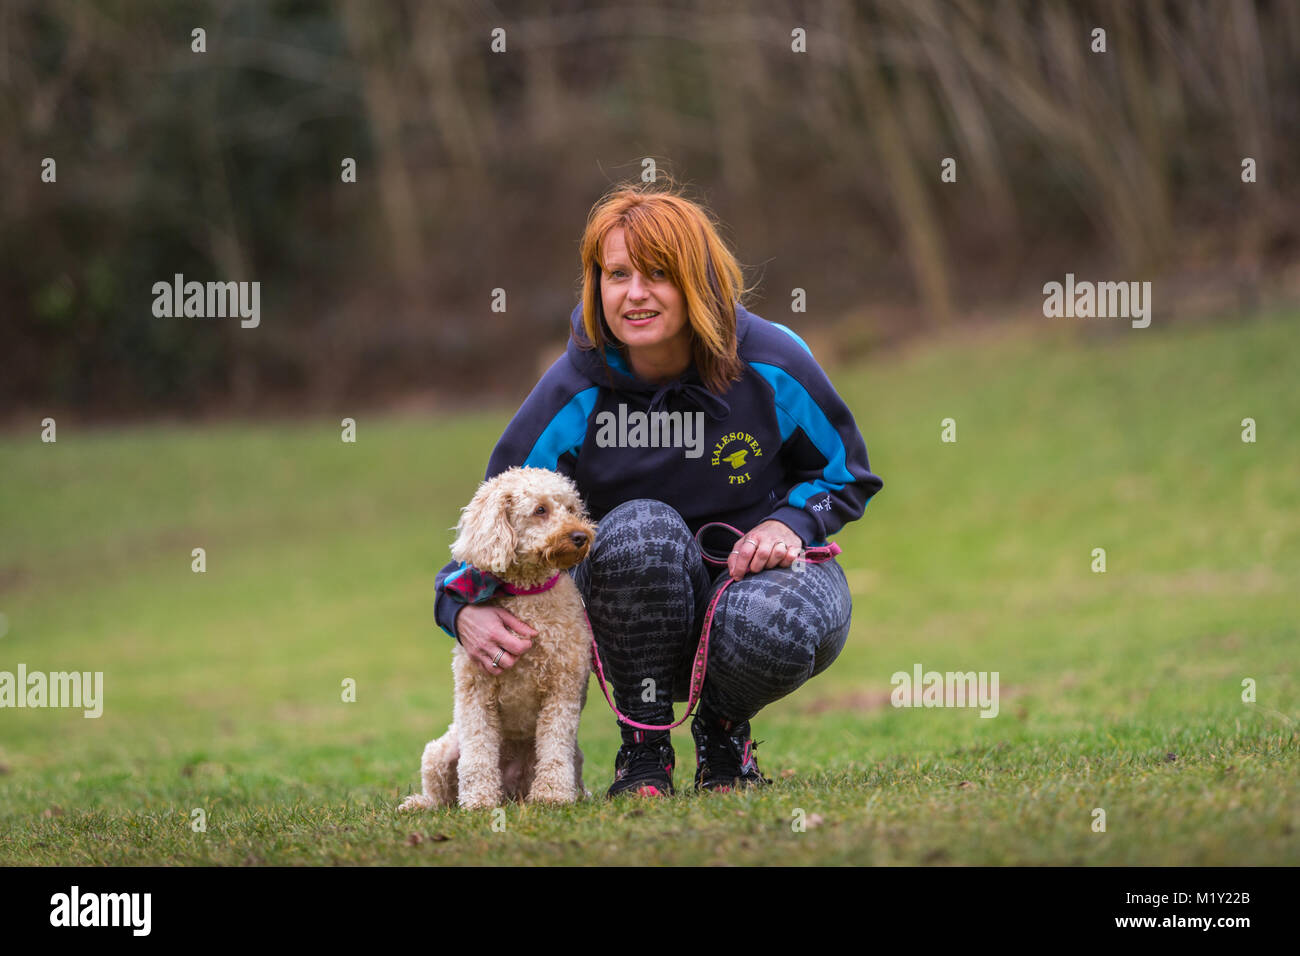 Little puppy terrier dog with its female owner in a park - Stock Image